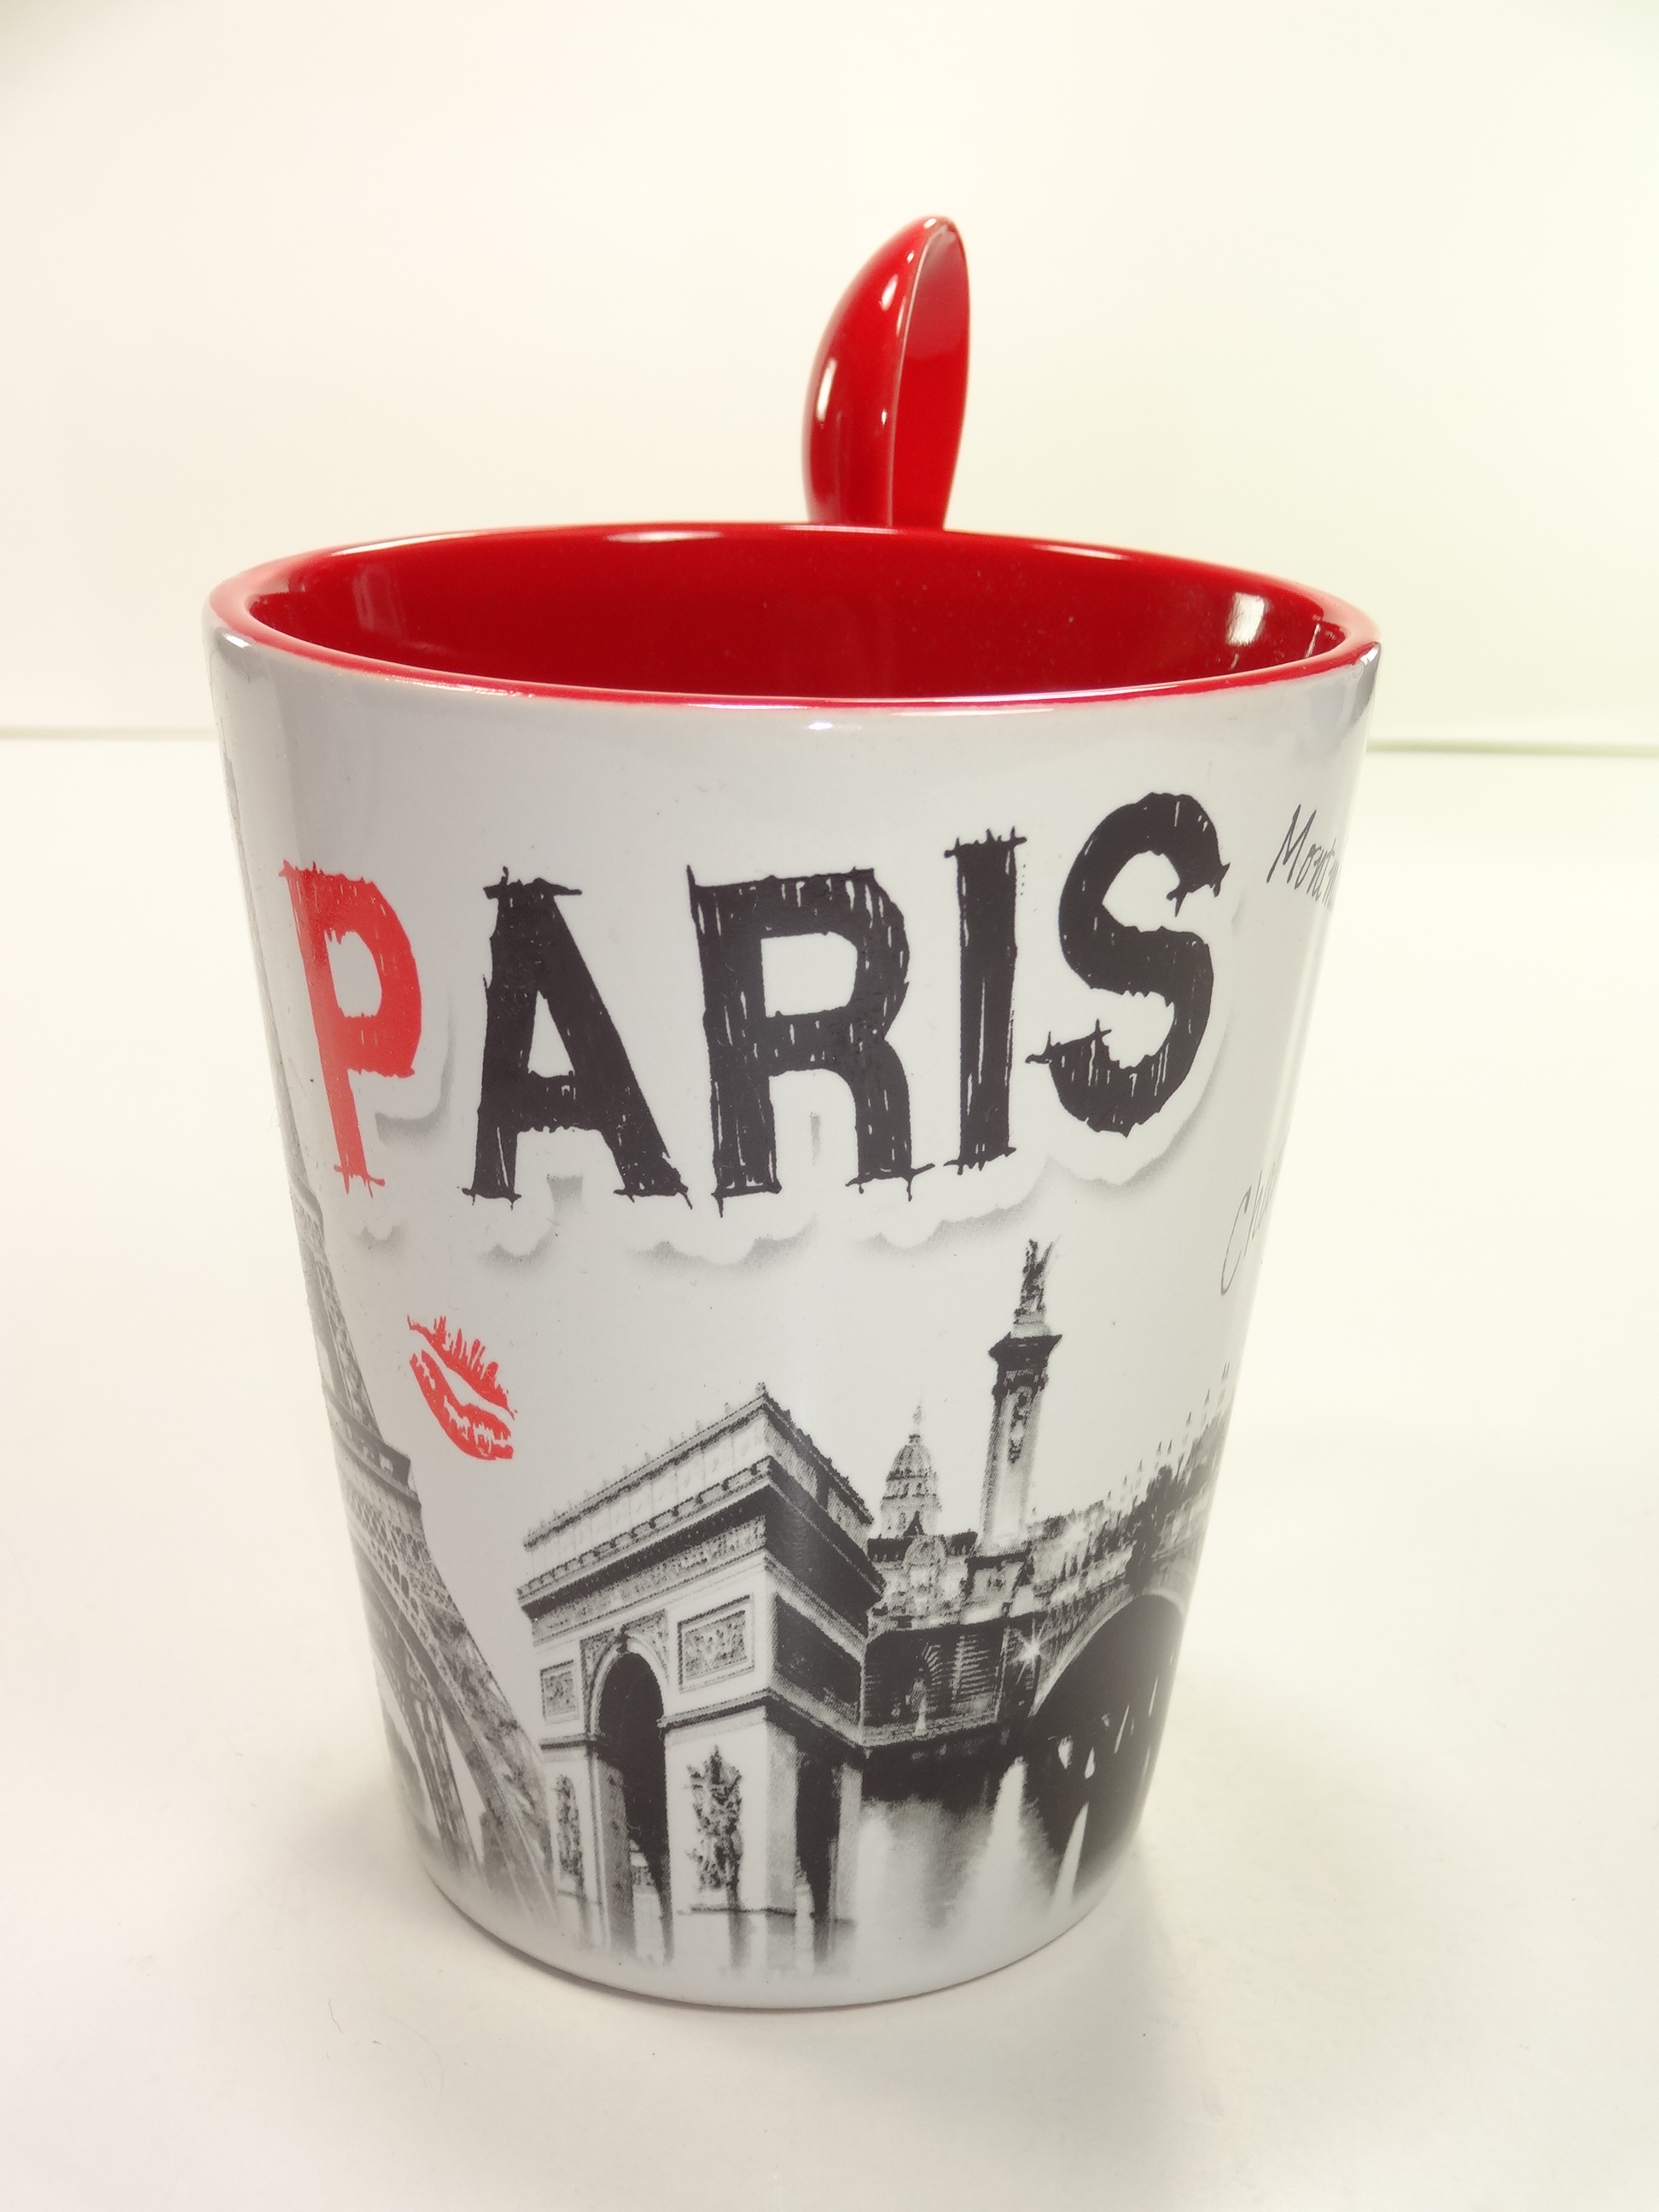 mug paris souvenirs et id es cadeaux de provence par boutique grenadine. Black Bedroom Furniture Sets. Home Design Ideas